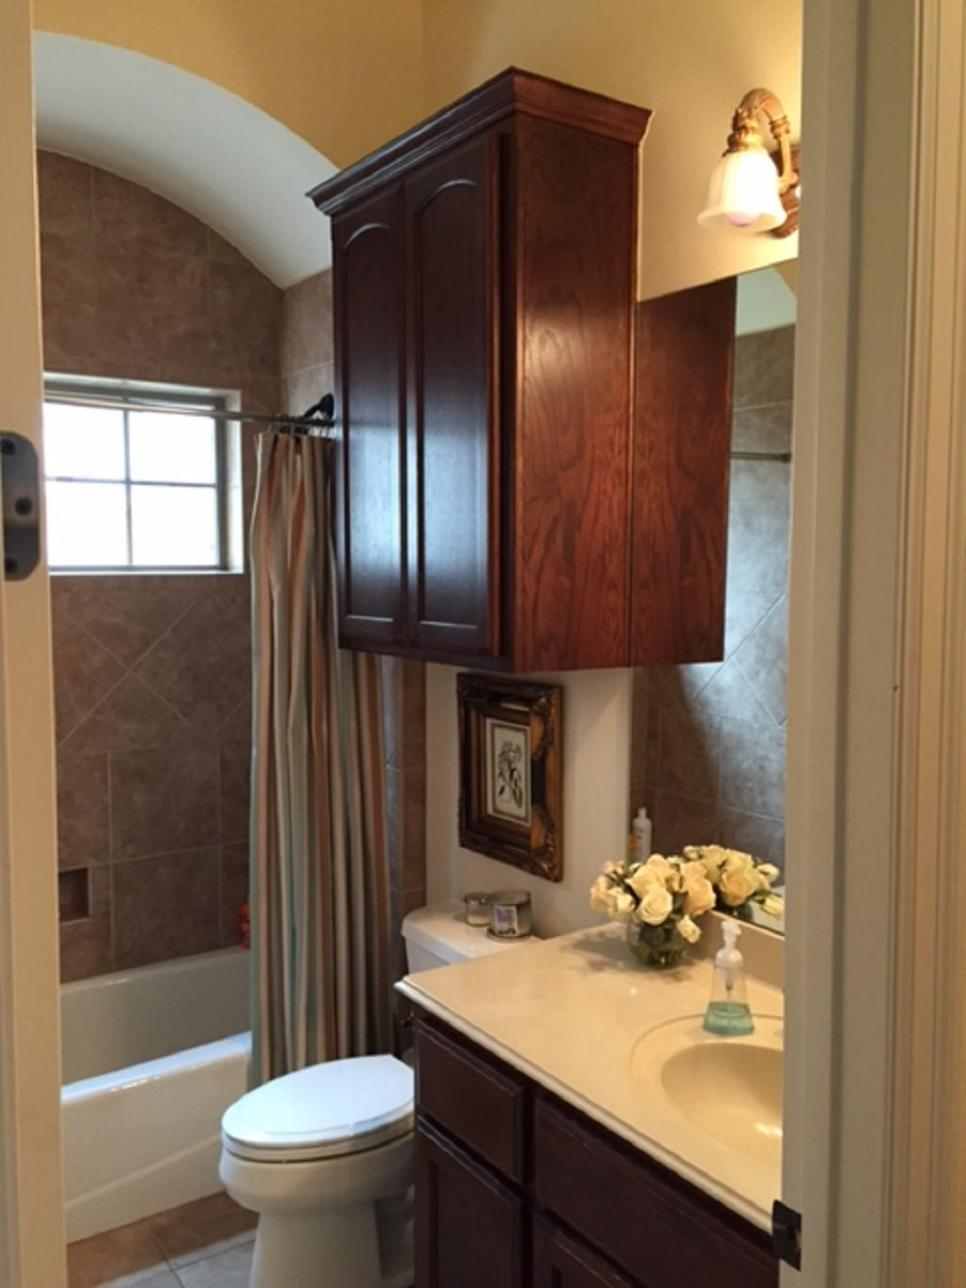 before-and-after bathroom remodels on a budget | hgtv GJDQLKV